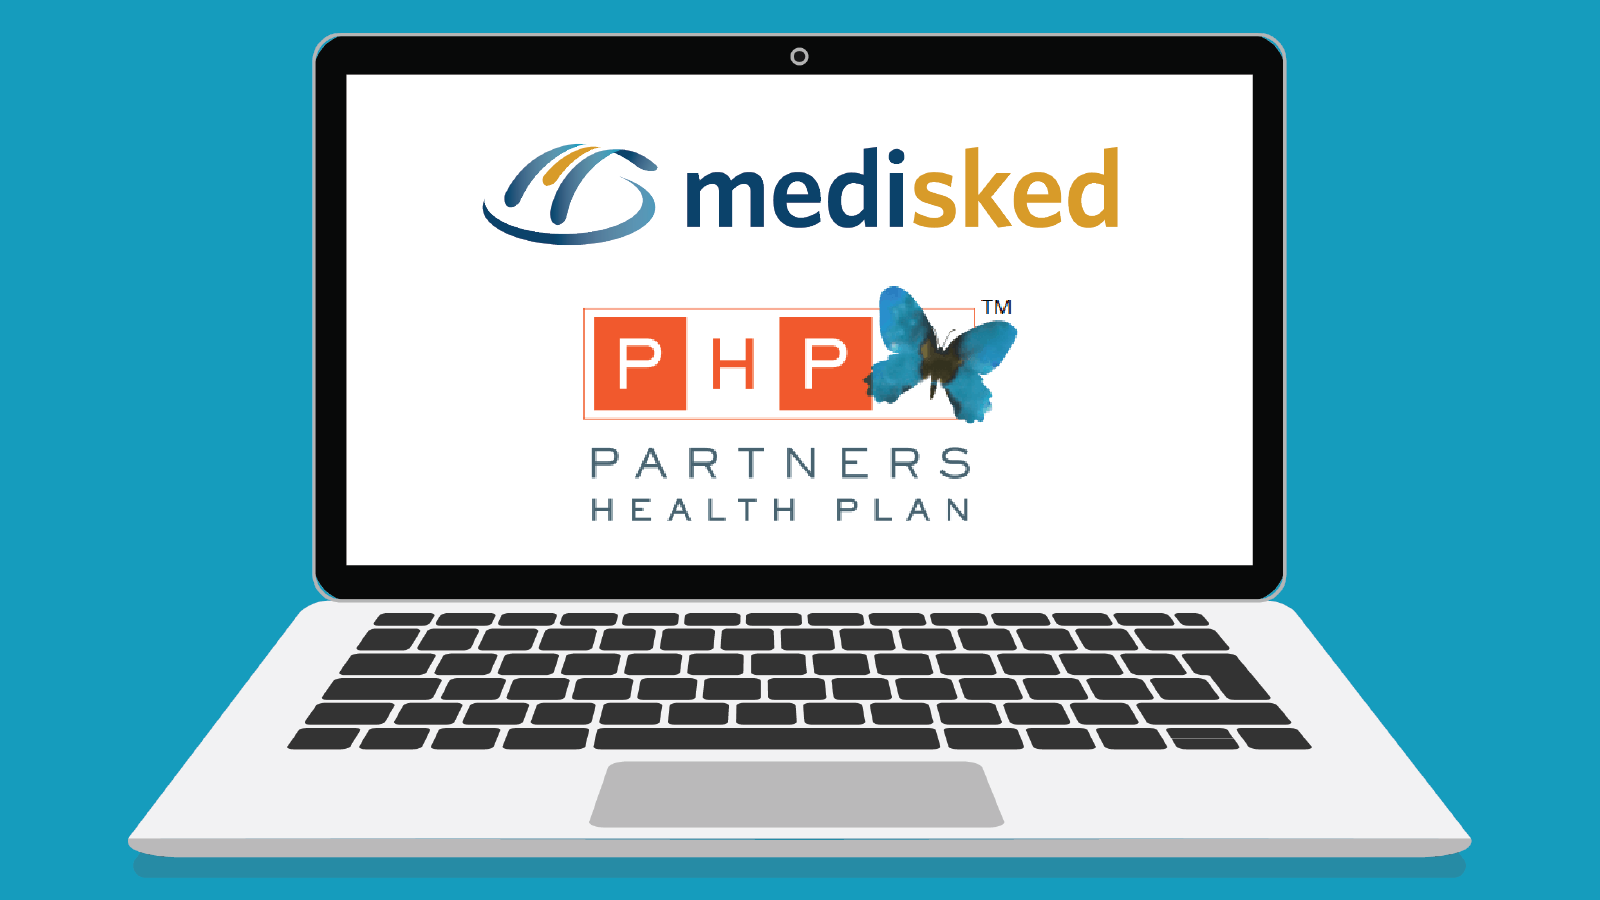 Illustration of a laptop with the logos for MediSked and Partners Health Plan on the screen.